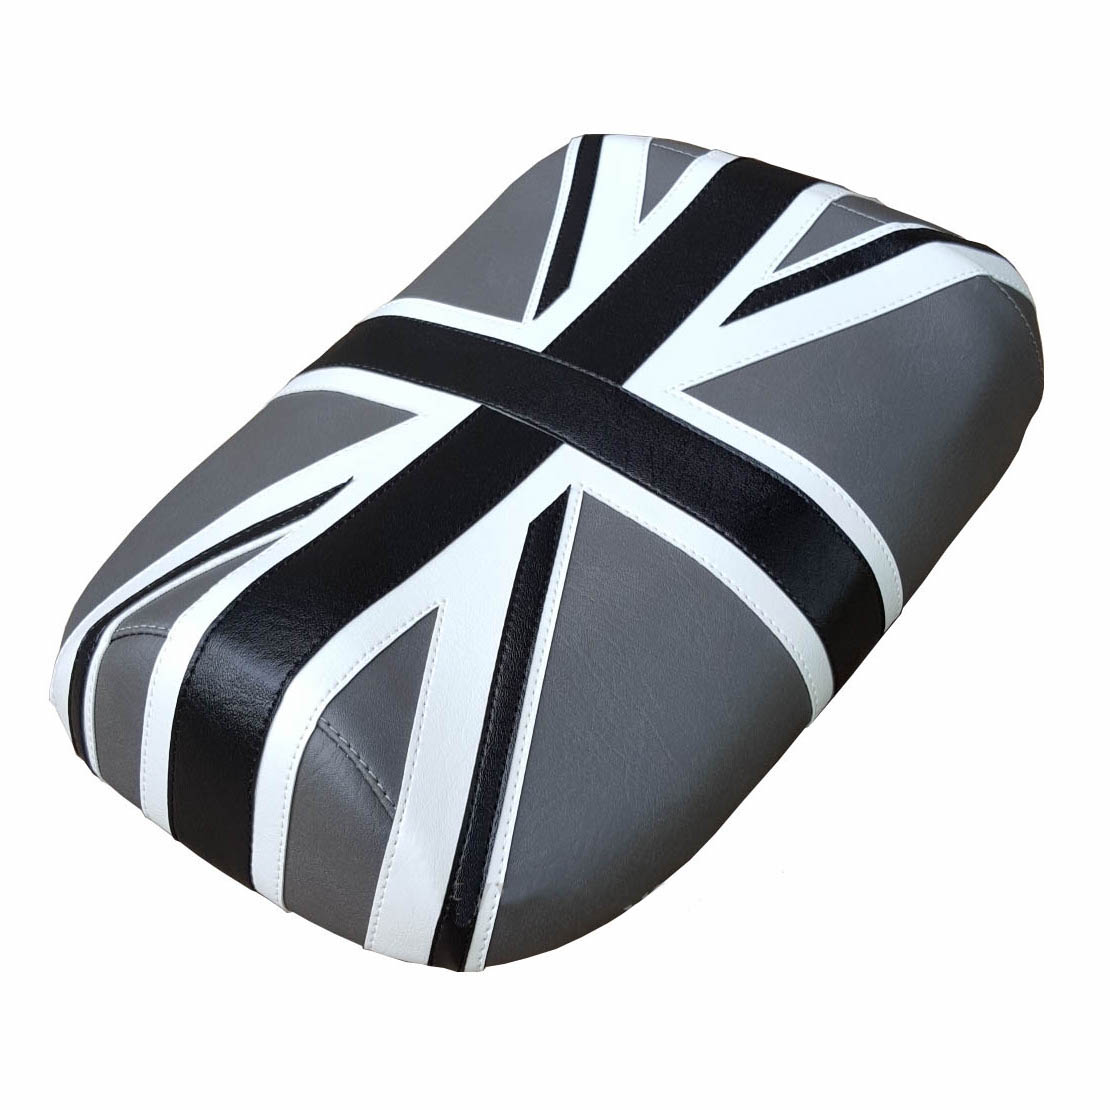 Union Jack Black and Gray Honda Ruckus Seat Cover British Flag